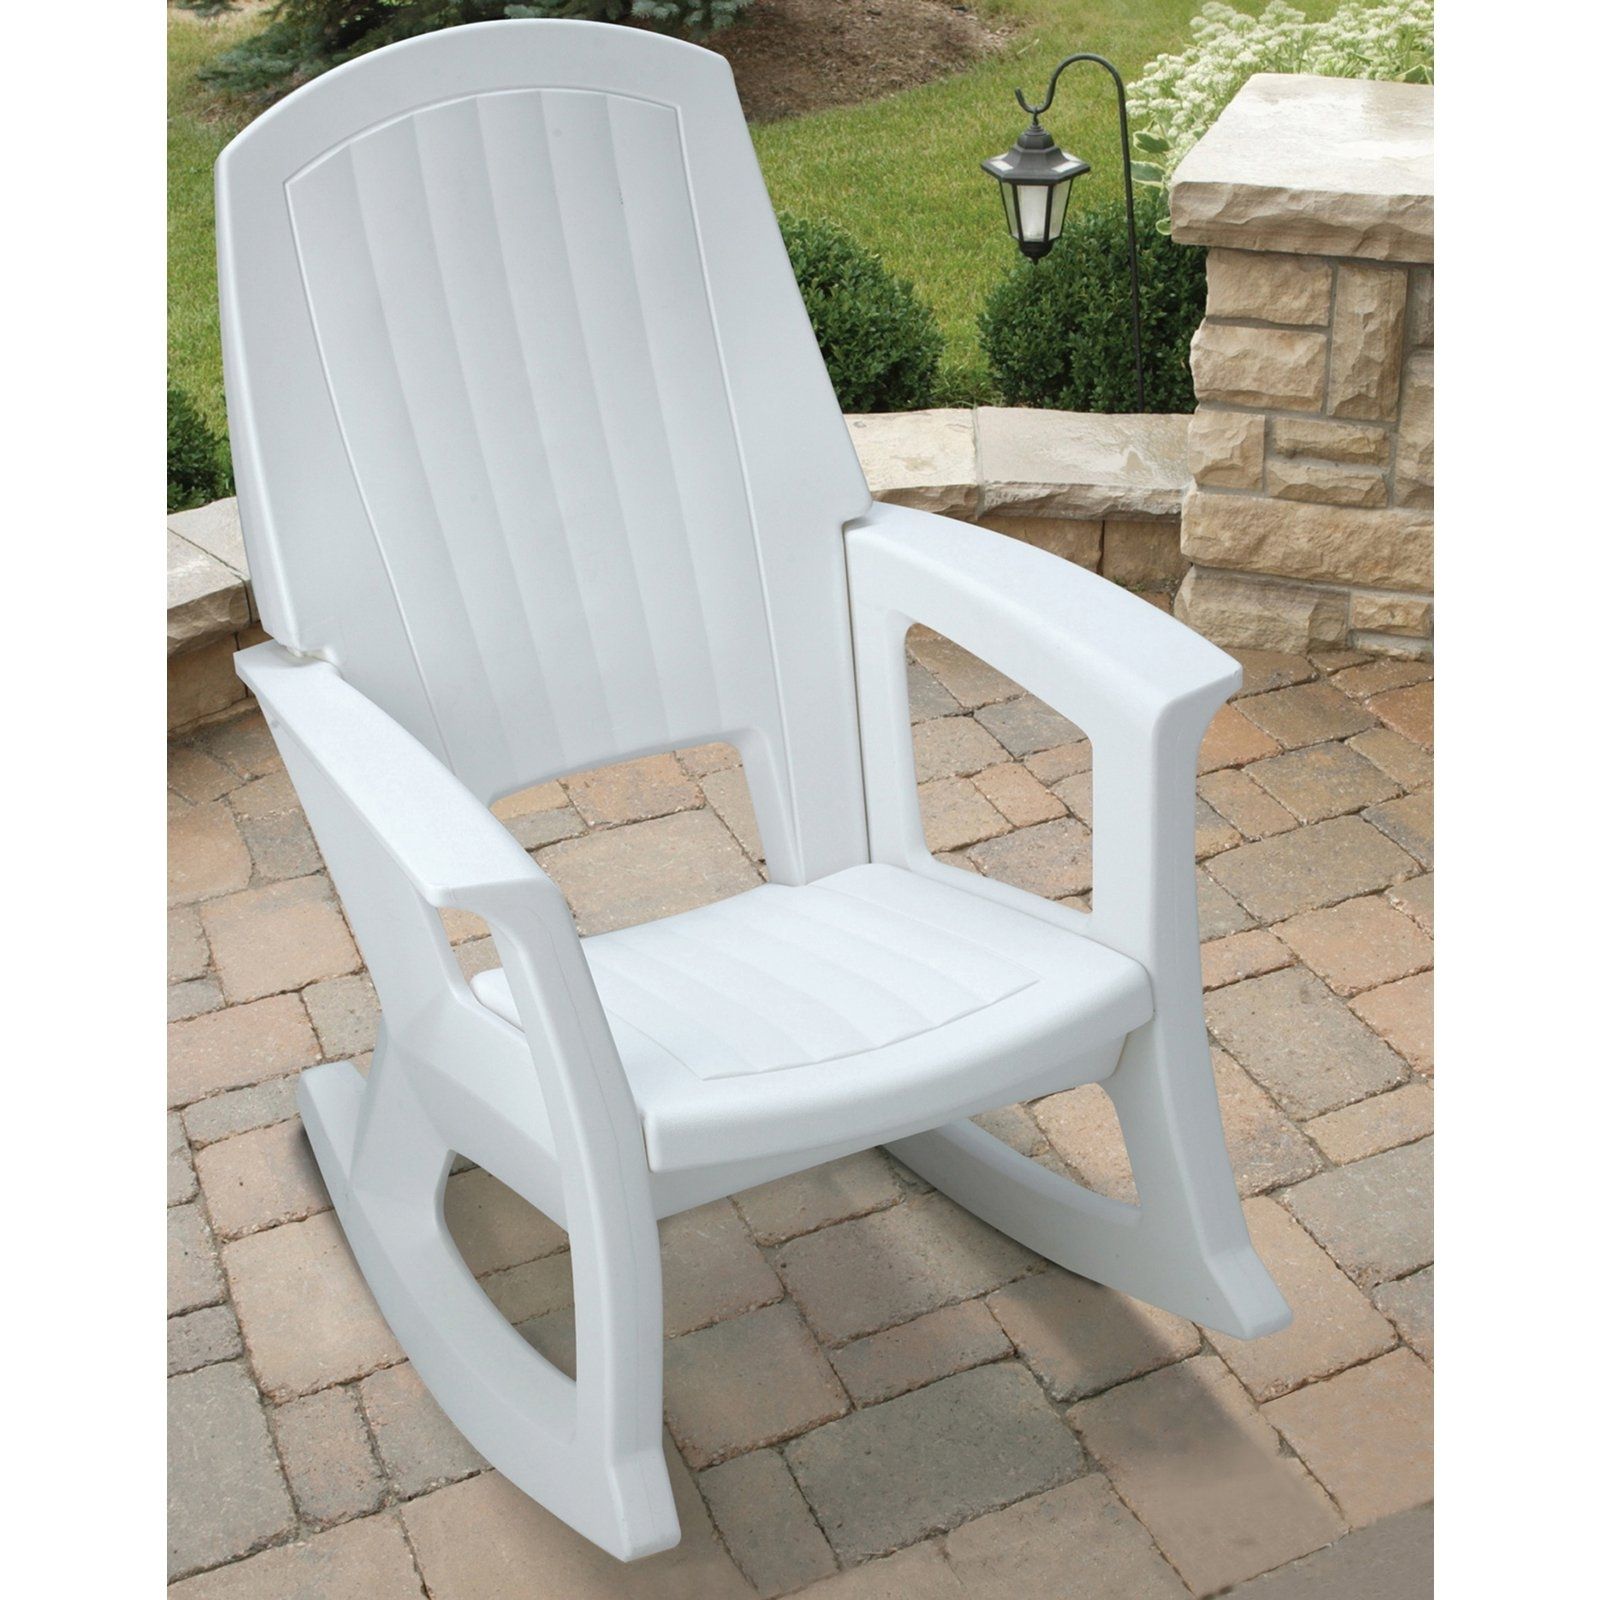 Trendy Rocking Chairs For Outdoors For Semco Recycled Plastic Rocking Chair – Walmart (View 14 of 15)